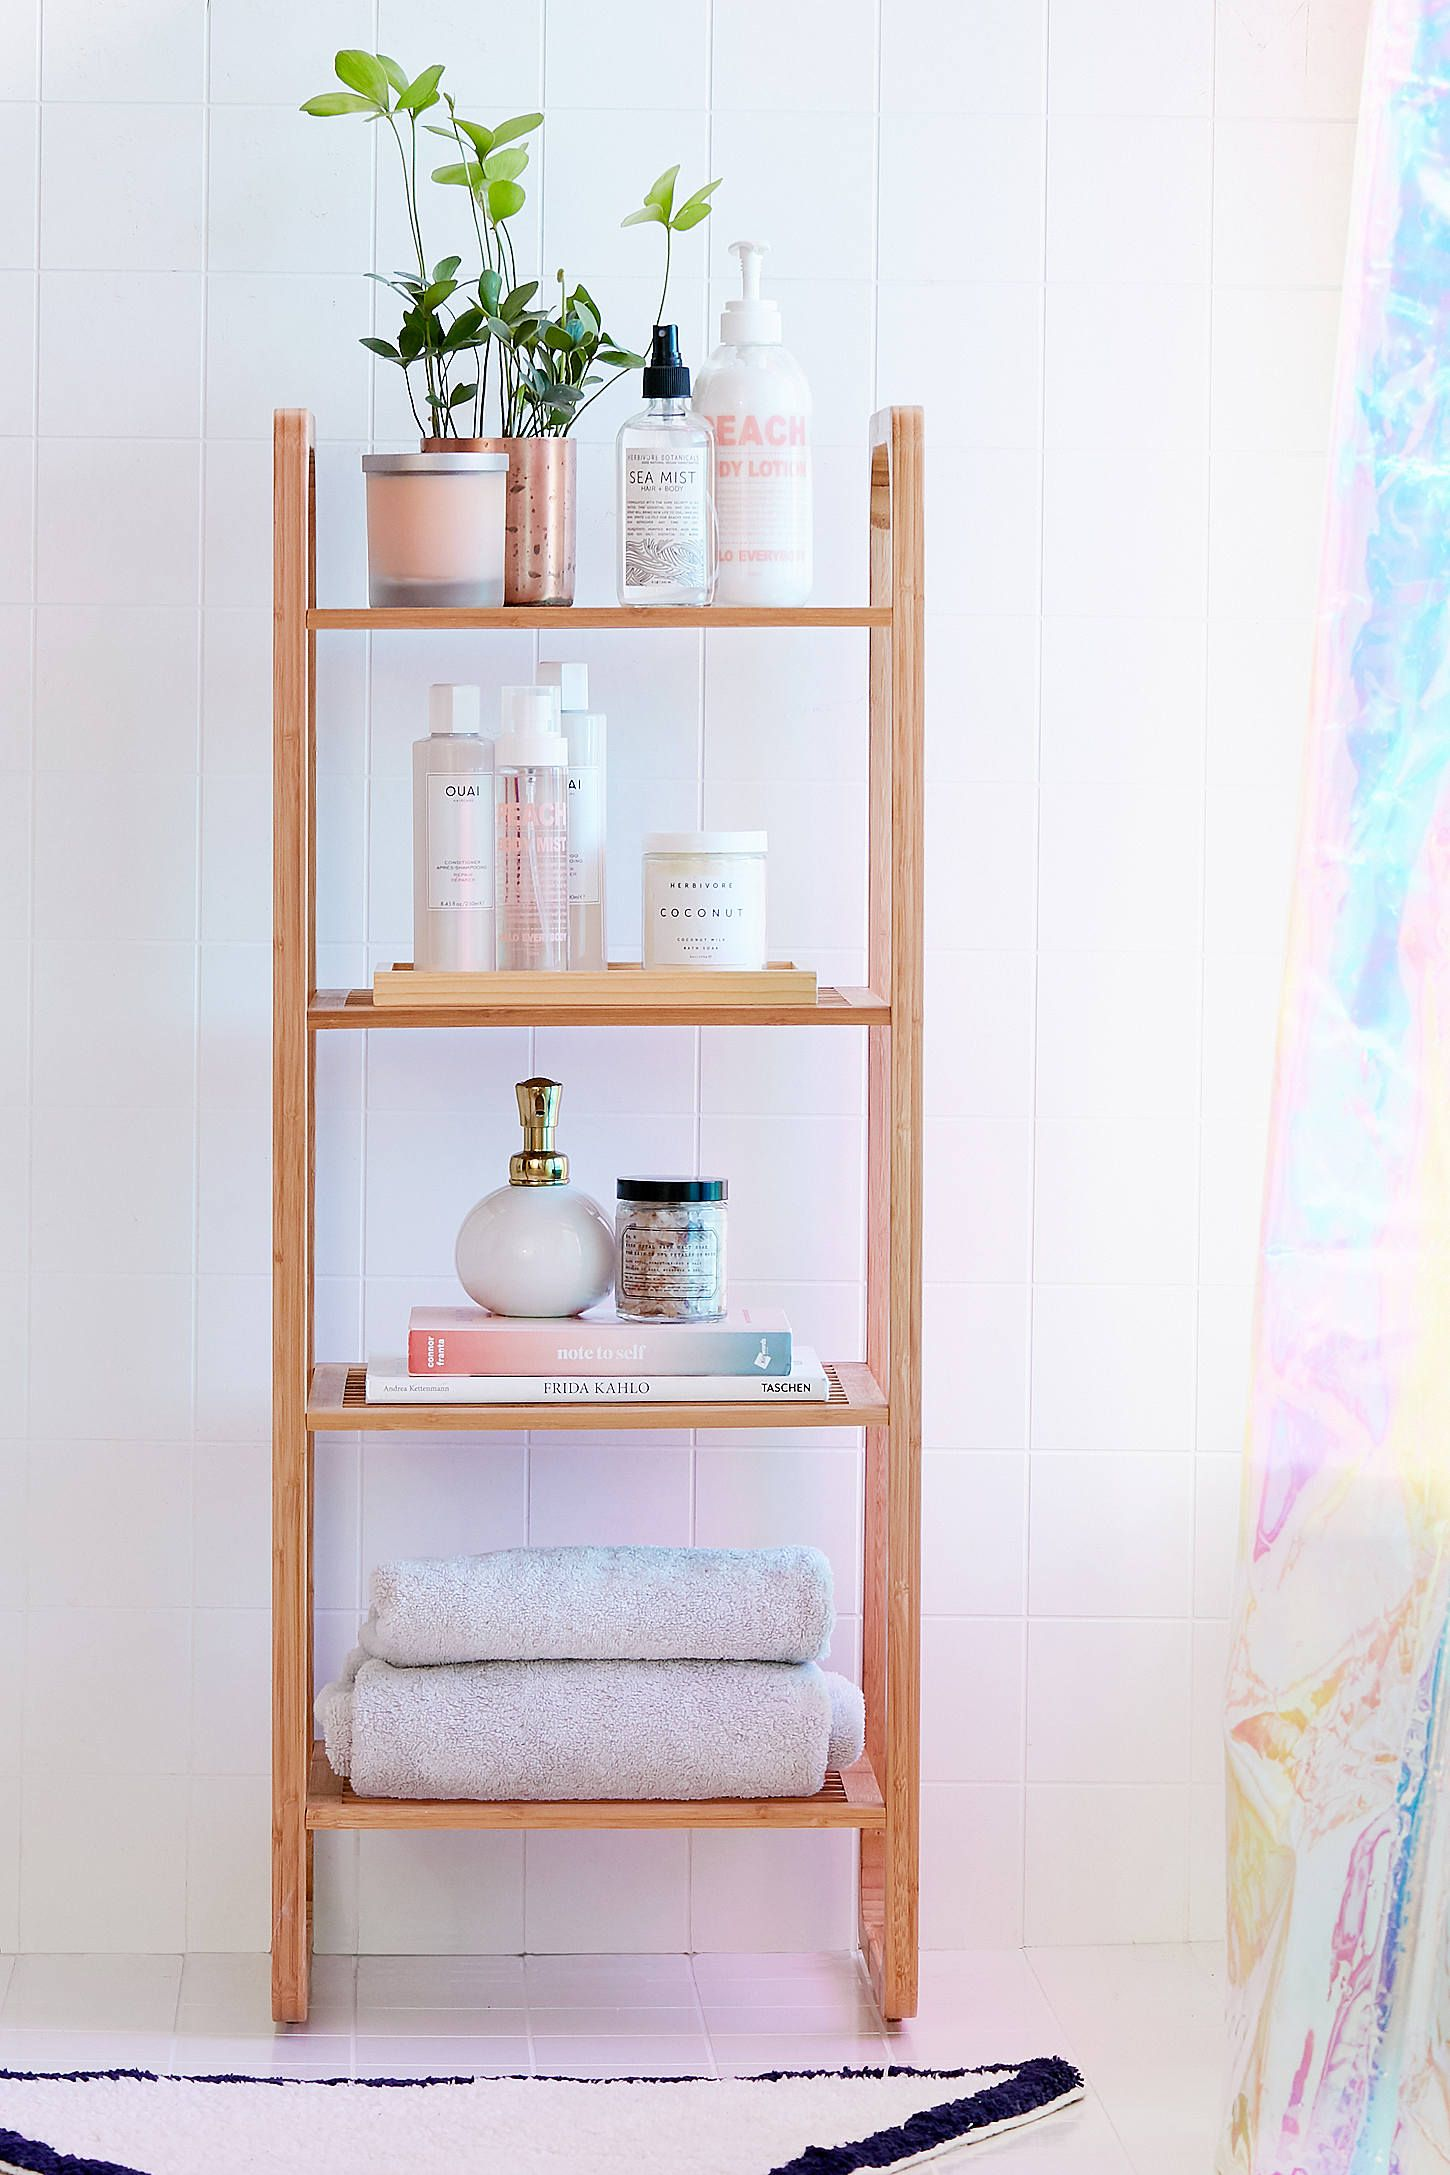 Bamboo Tiered Shelf Badezimmer Dekor Bambus Regal Badezimmer Diy